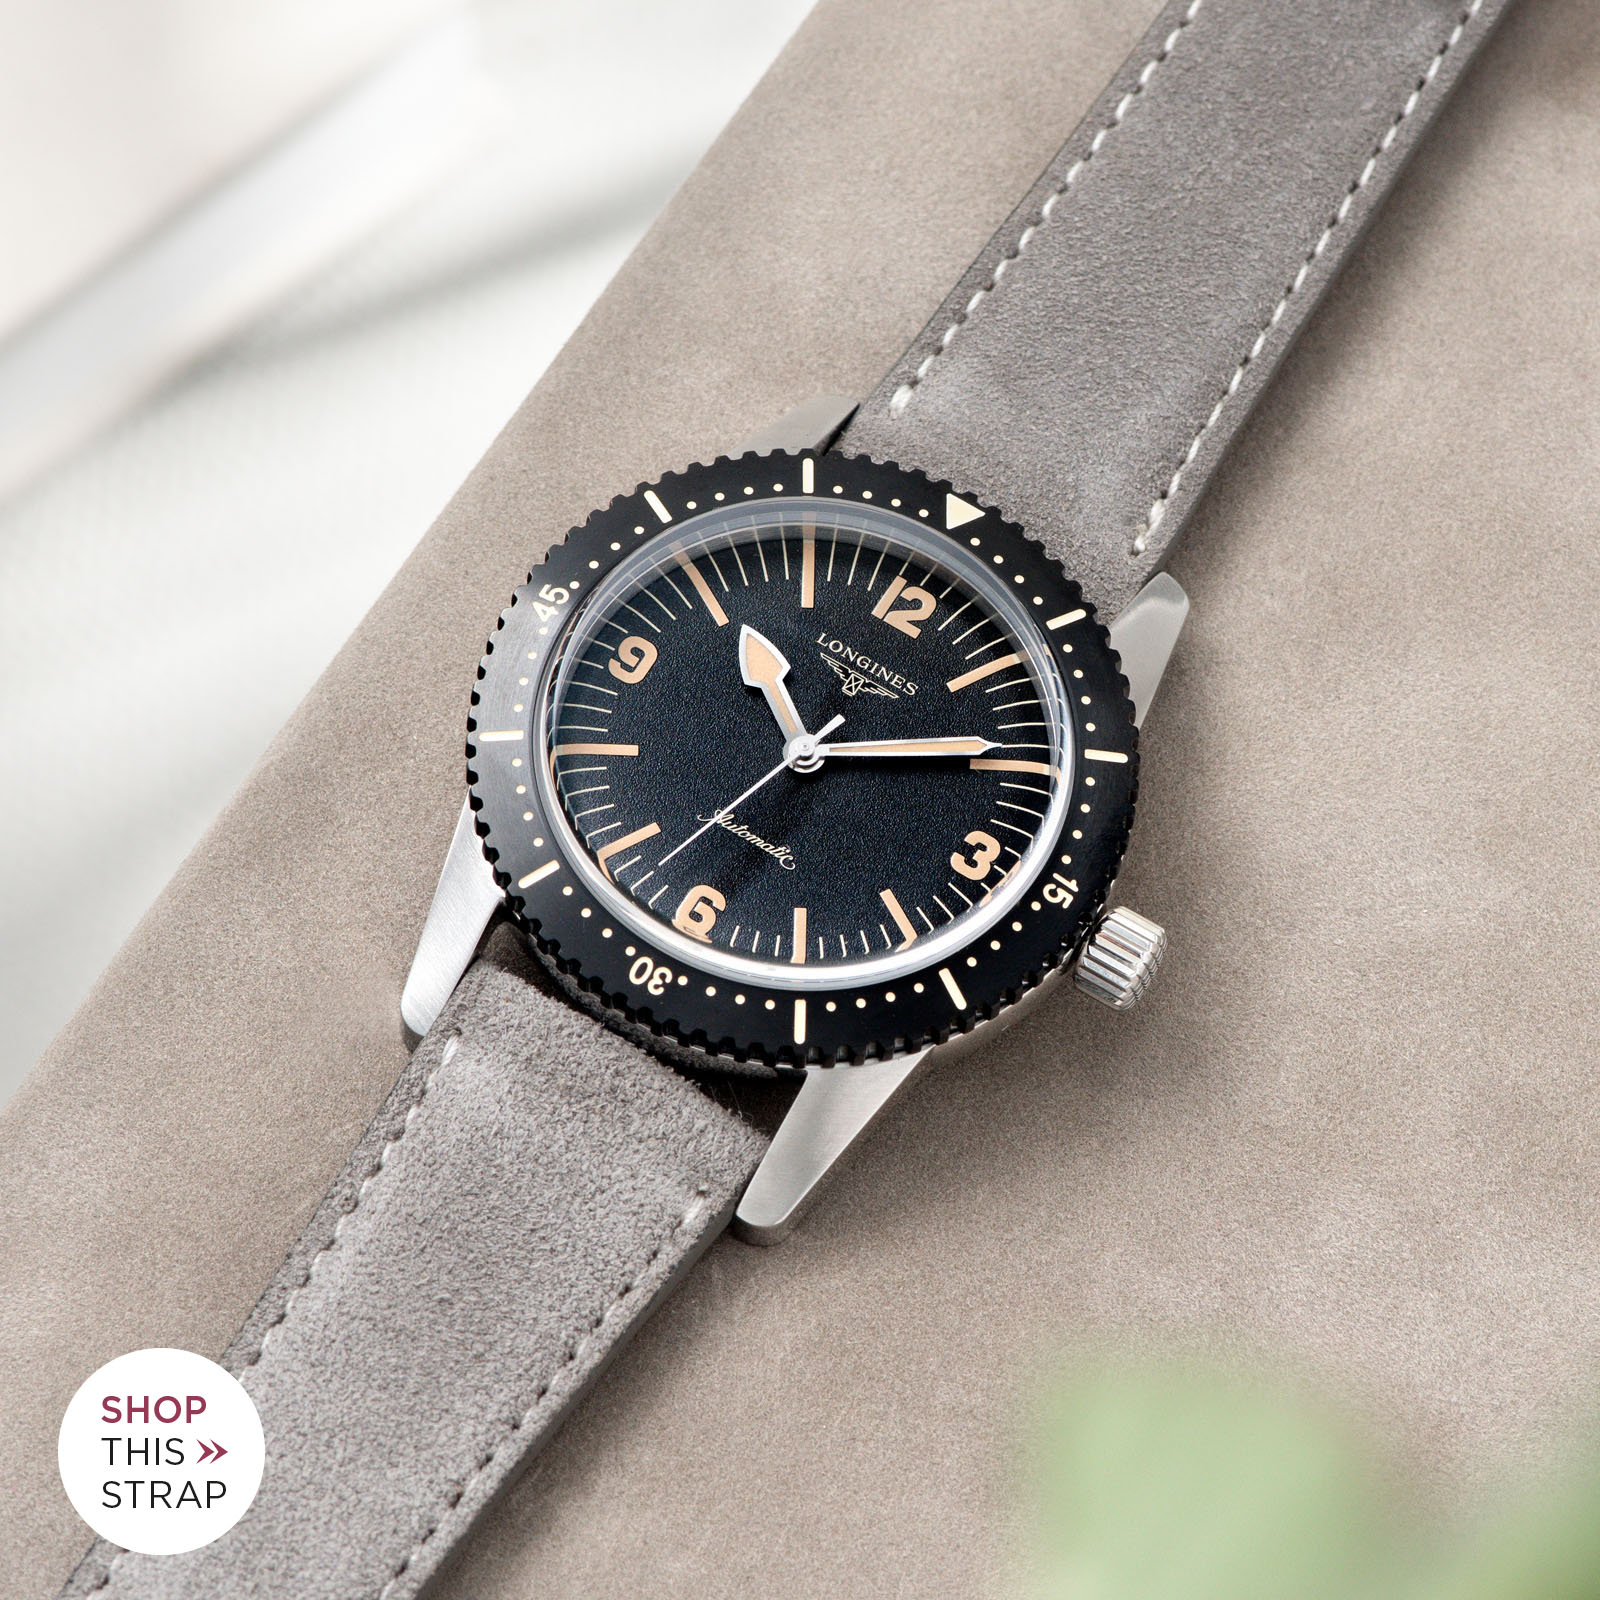 Bulang and Sons_Strap Guide_Longines Skin Diver_Harbor Grey Silky Suede Leather Watch Strap